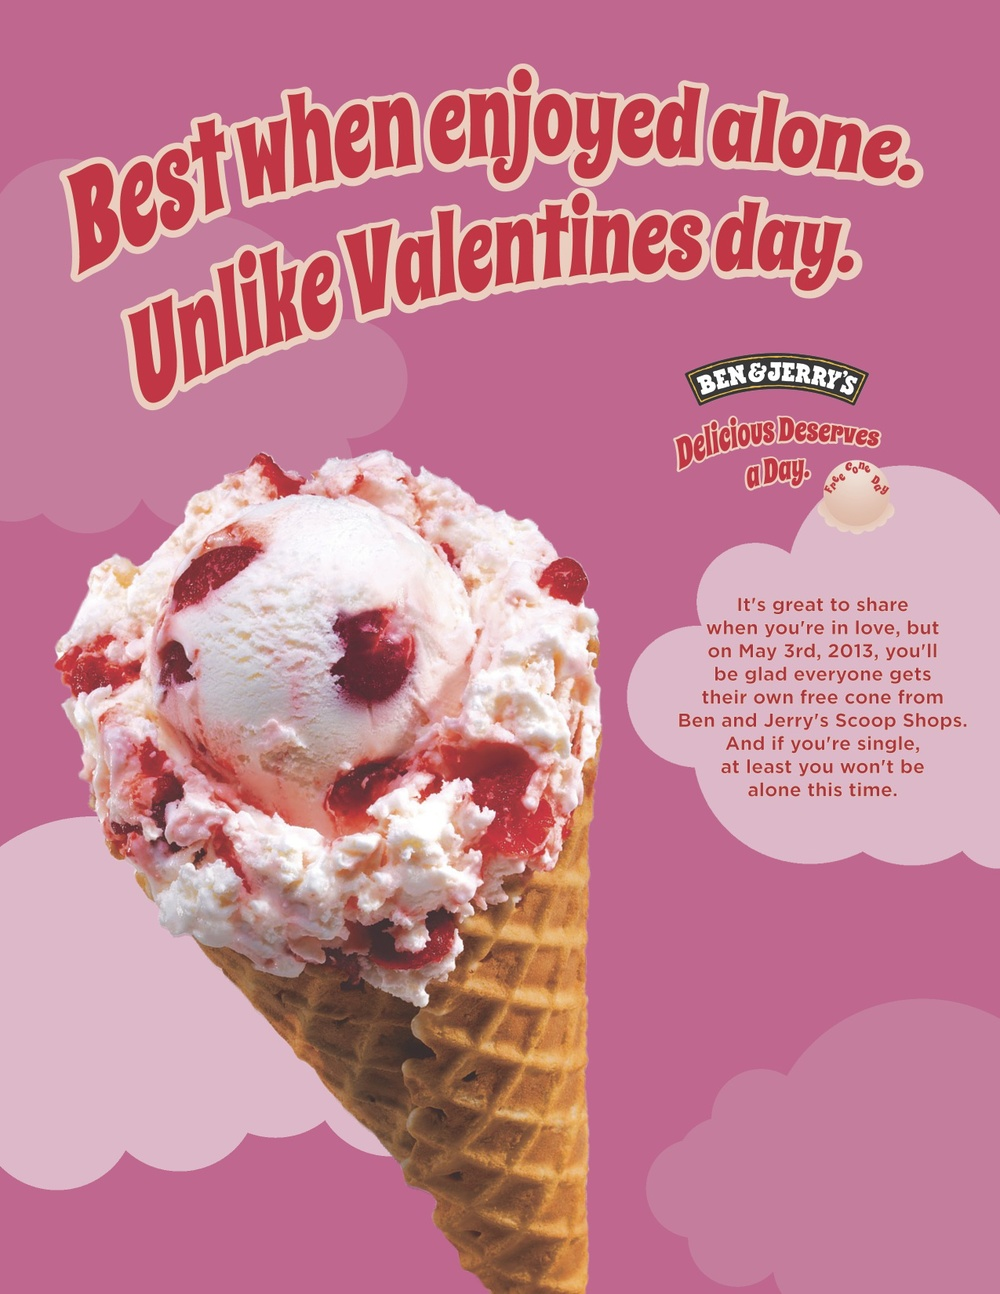 Ben & Jerry's Free Cone Day ad 4.jpg